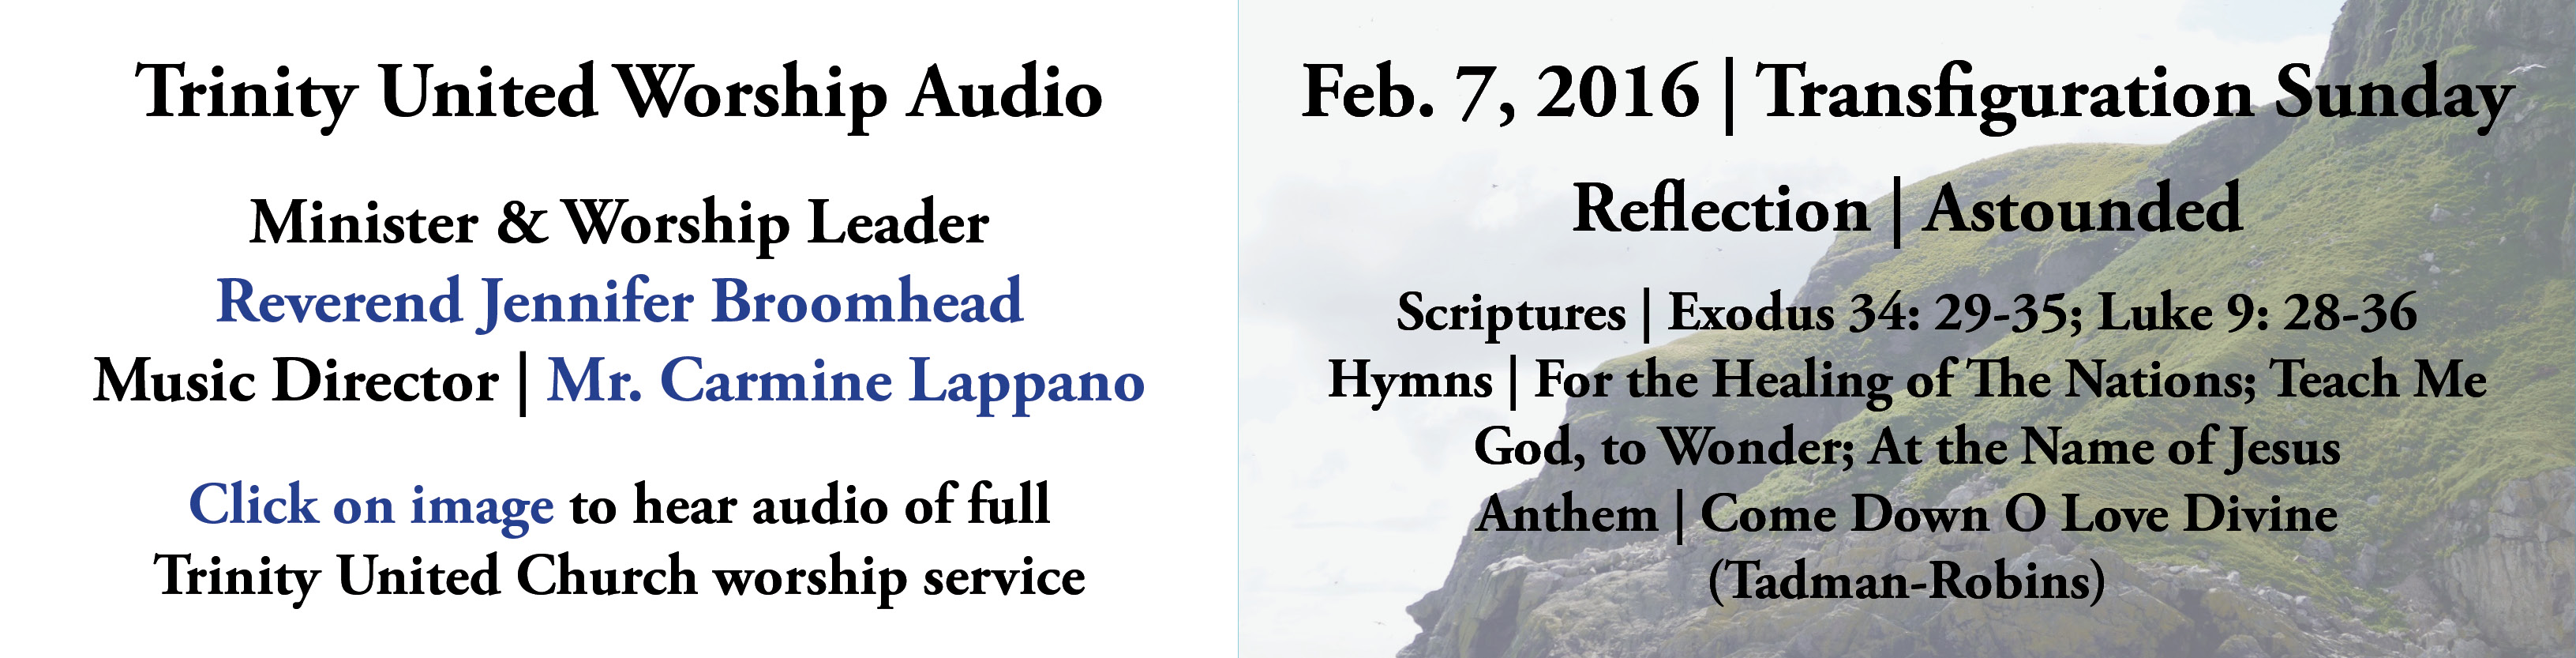 Trinity United Worship Audio |February 7, 2016 | Transfiguration Sunday